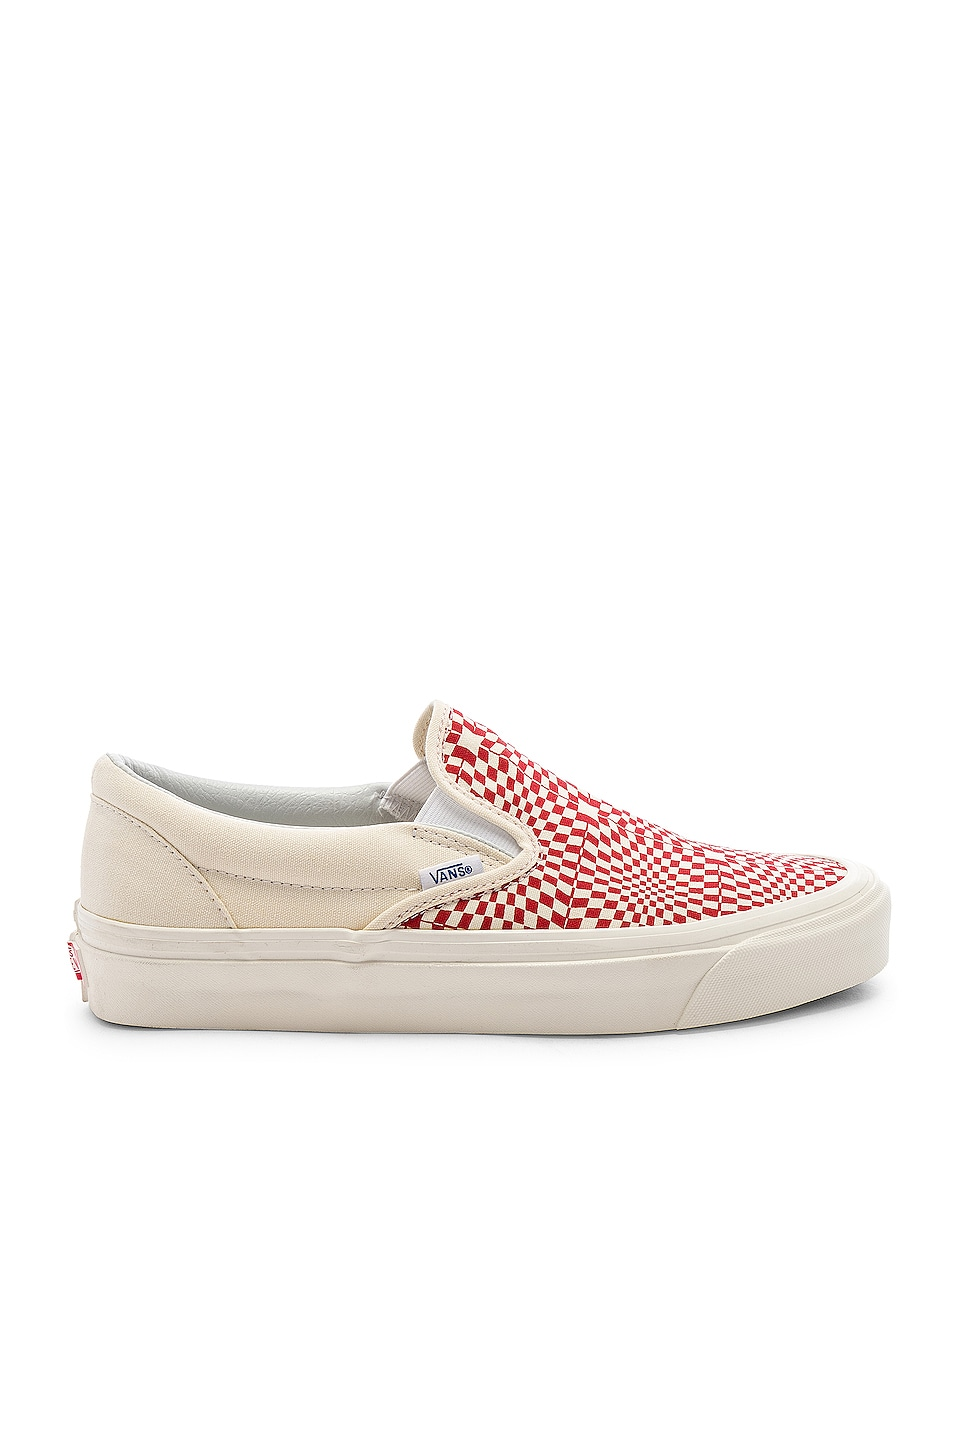 Vans Slip-On 98 in OG Red & White & Warp Check